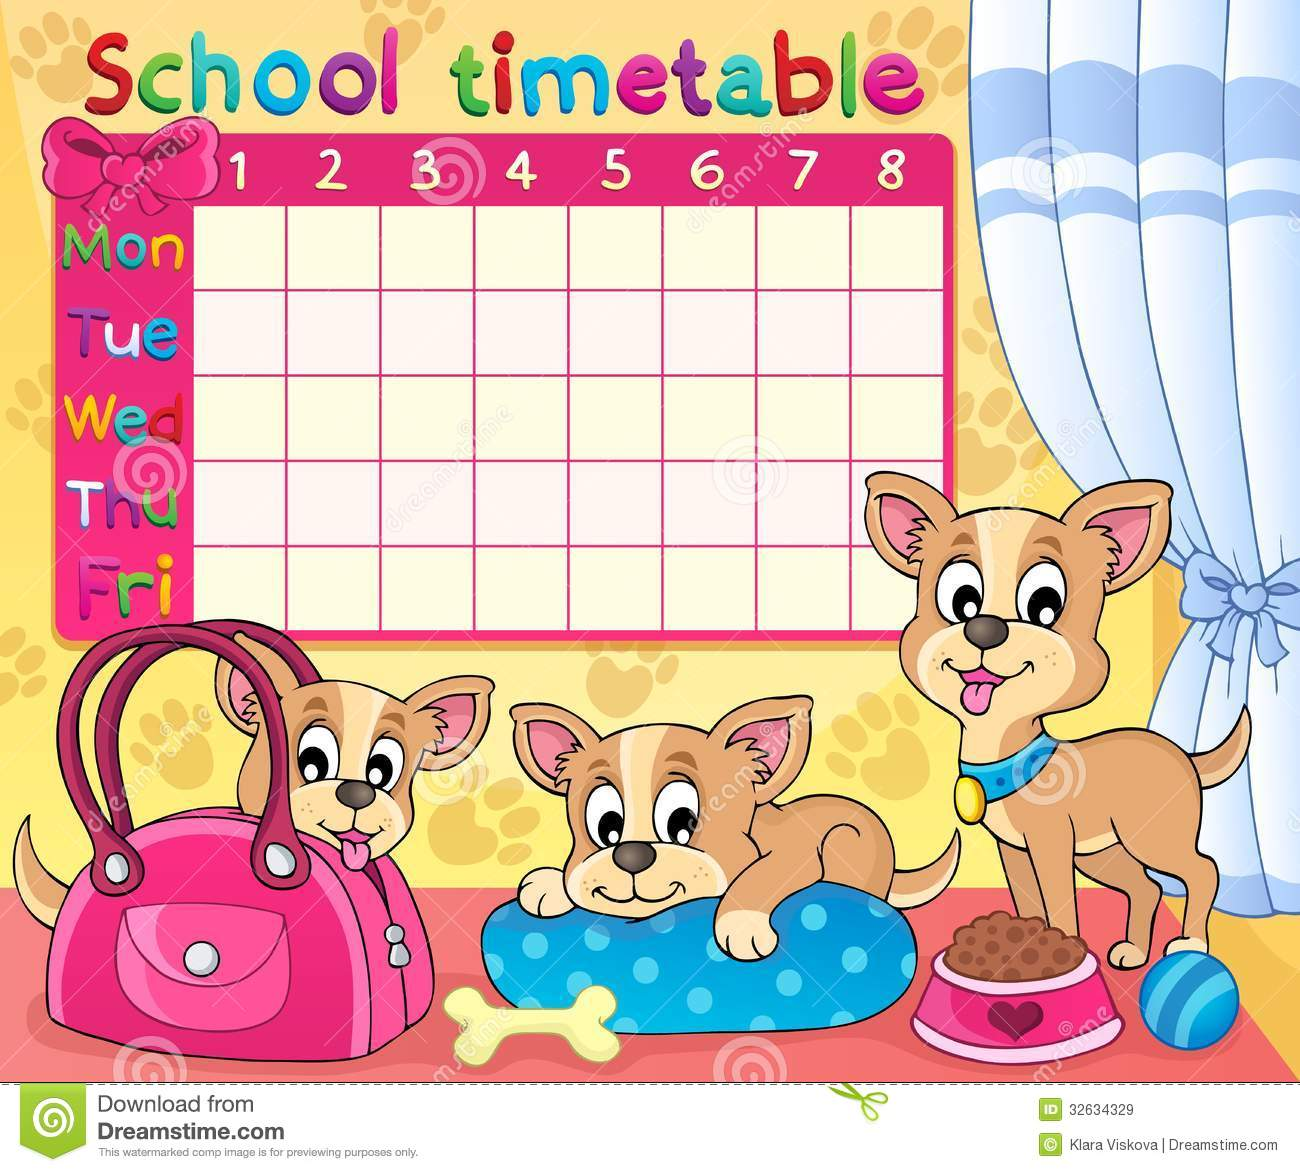 Quotes On School Time Table: School Timetable Thematic Image 5 Royalty Free Stock